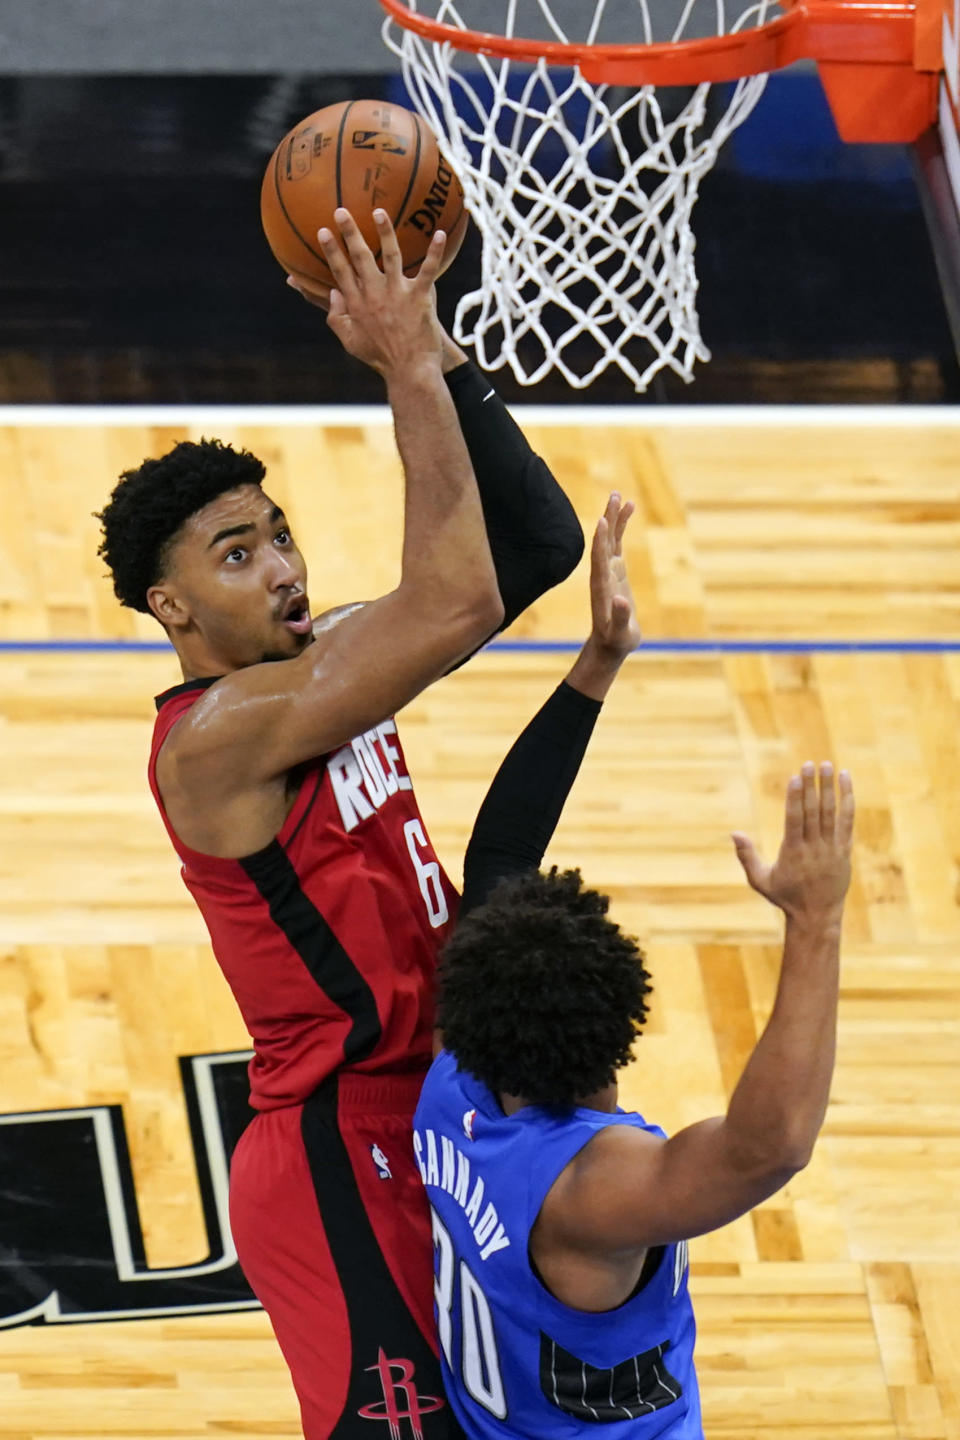 Houston Rockets forward KJ Martin, left, takes a shot over Orlando Magic guard Devin Cannady during the first half of an NBA basketball game, Sunday, April 18, 2021, in Orlando, Fla. (AP Photo/John Raoux)